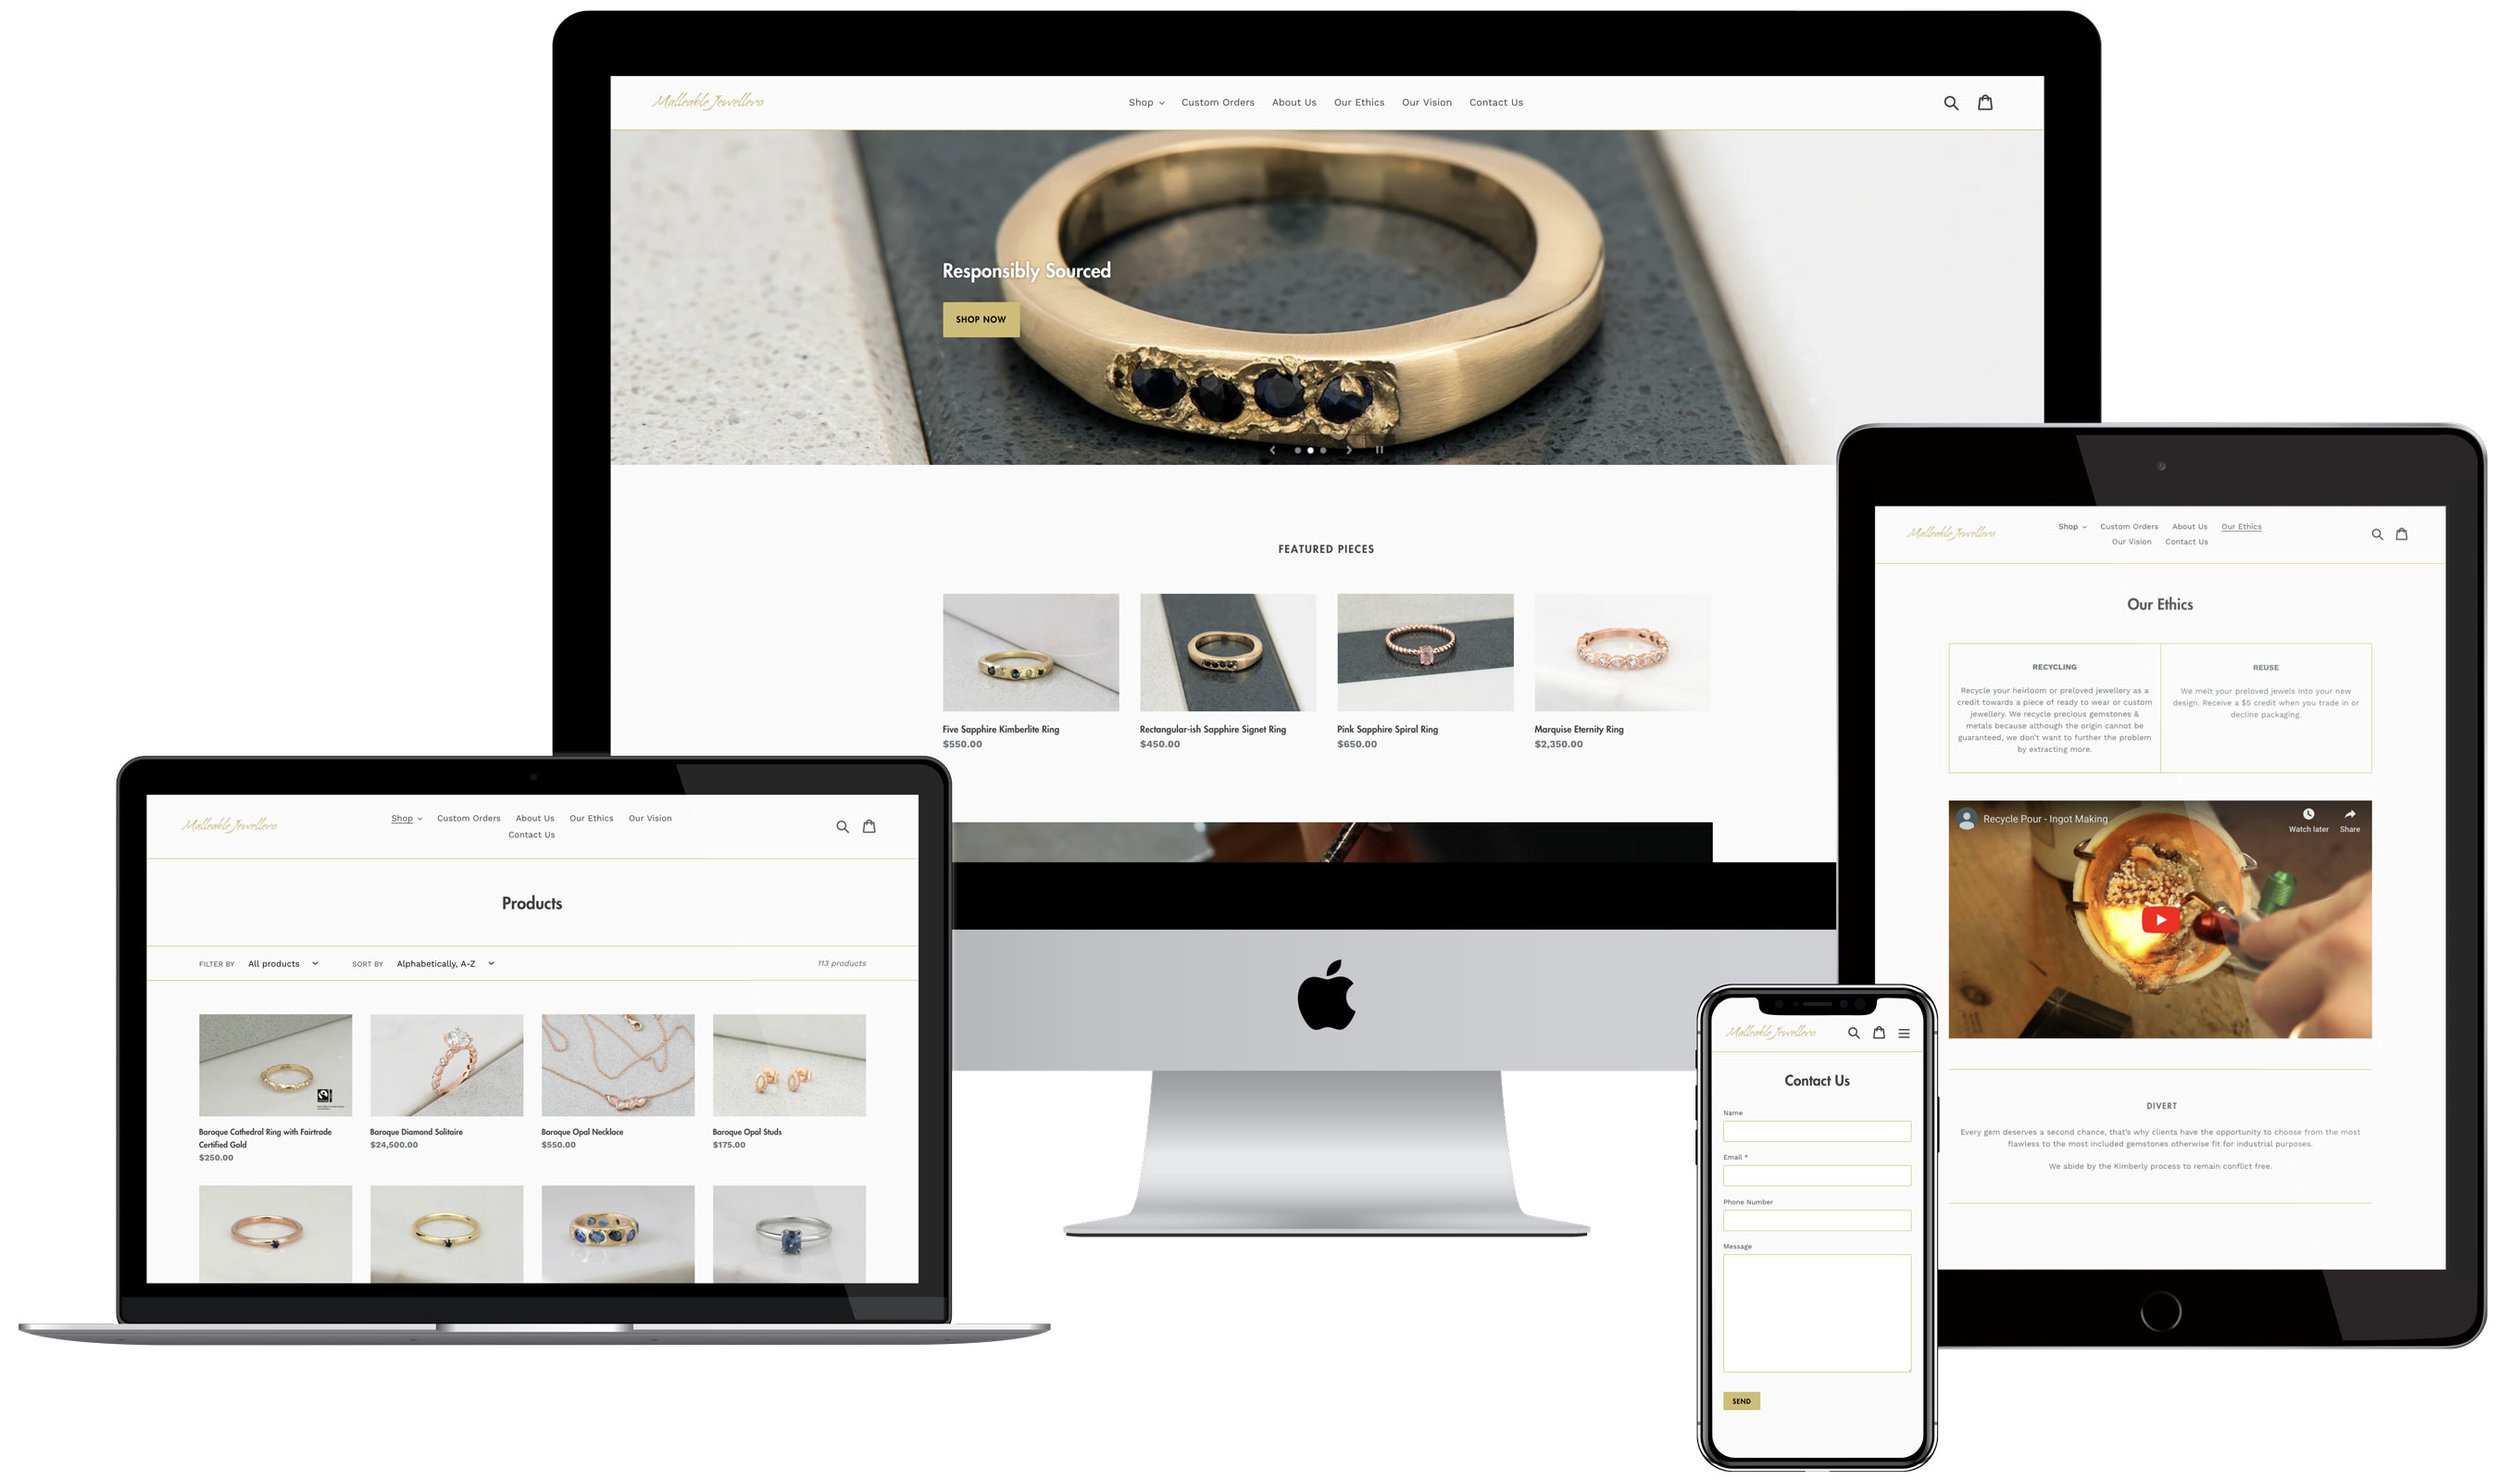 Malleable Jewellers → Fair Trade Jewellery Designers